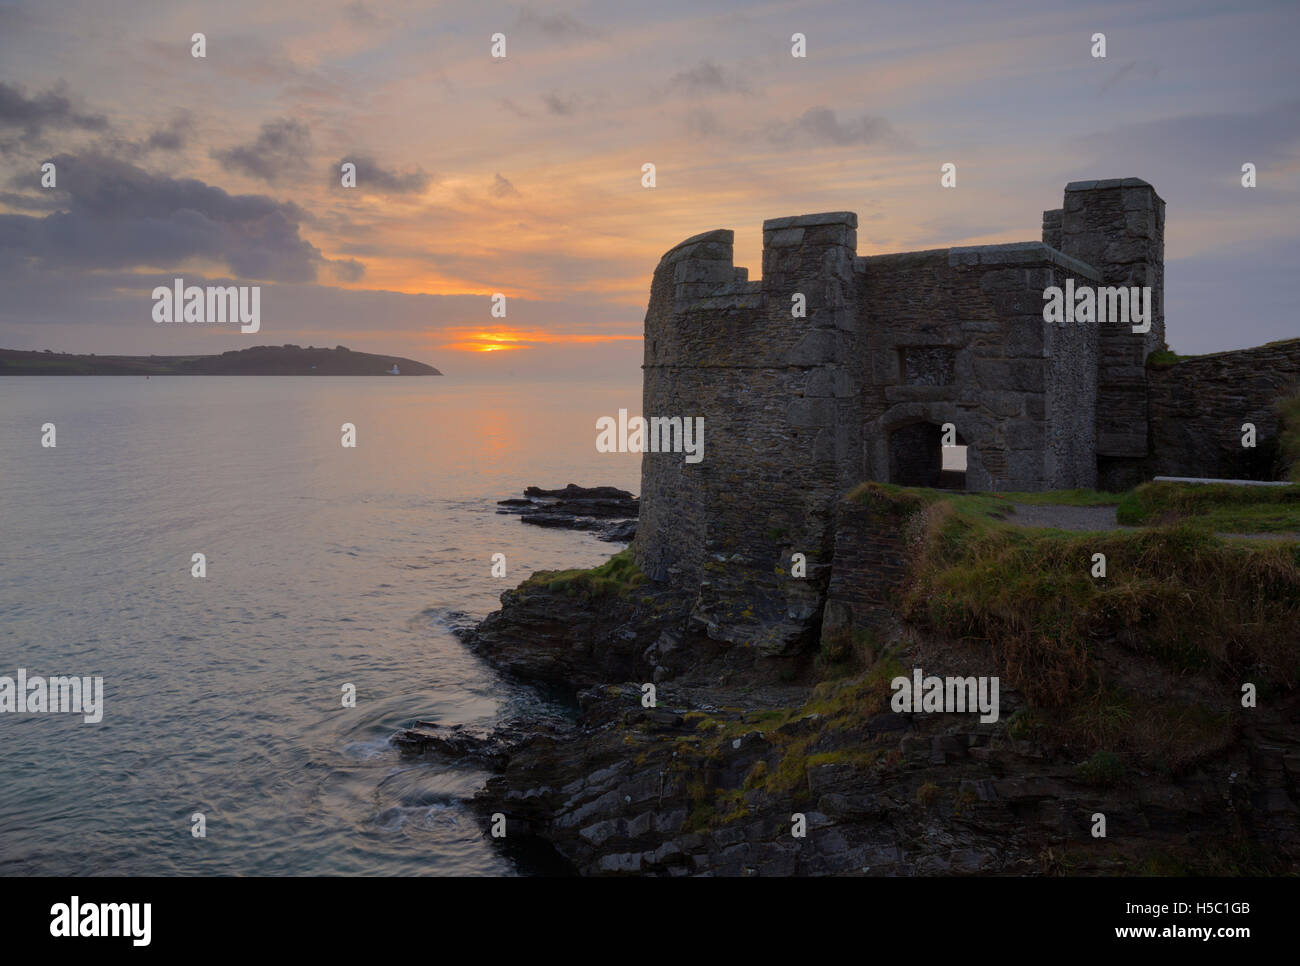 Dawn over Pendennis Point in Cornwall, looking across Carrick Roads towards St Anthony Head - Stock Image